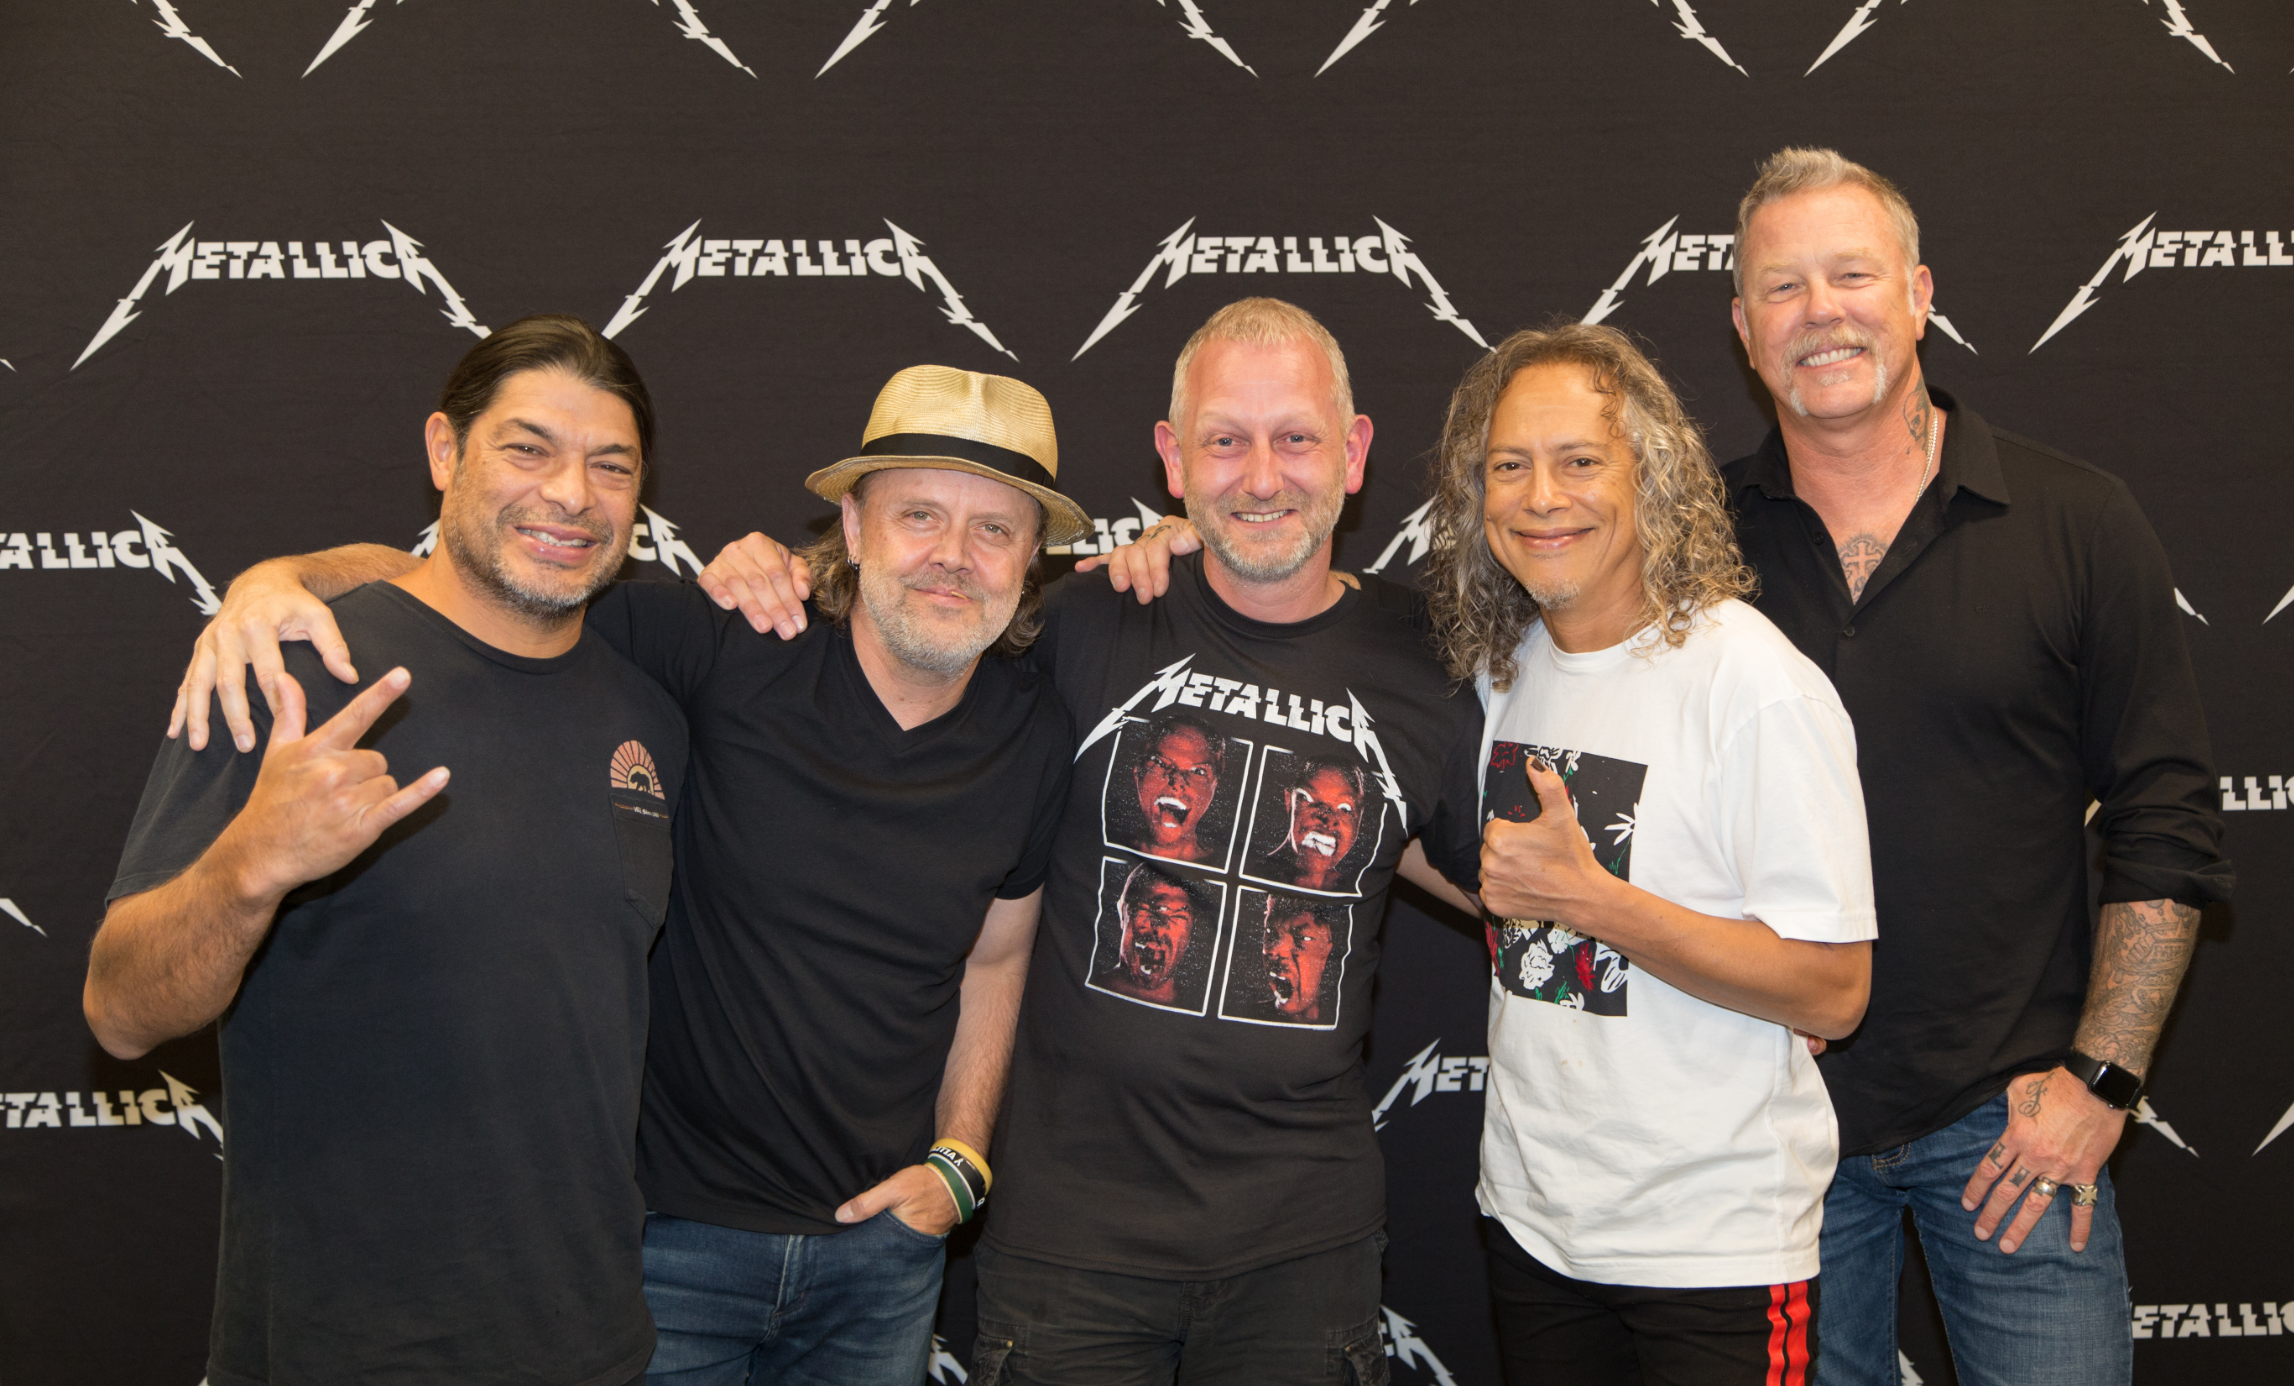 Metallica Tour Europe 2019 Enhanced Experience Packages